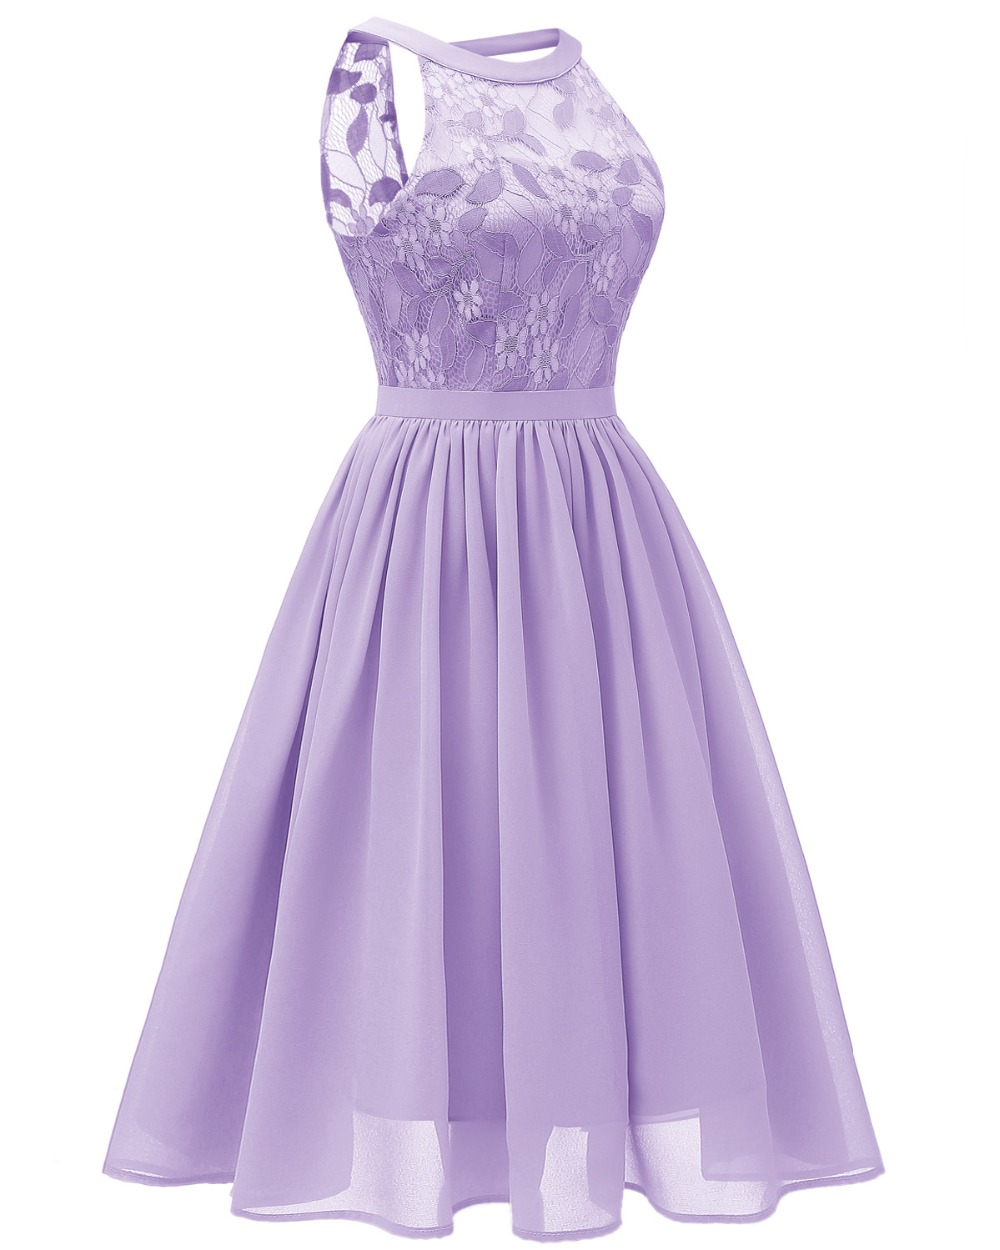 Formal Party Dress 4